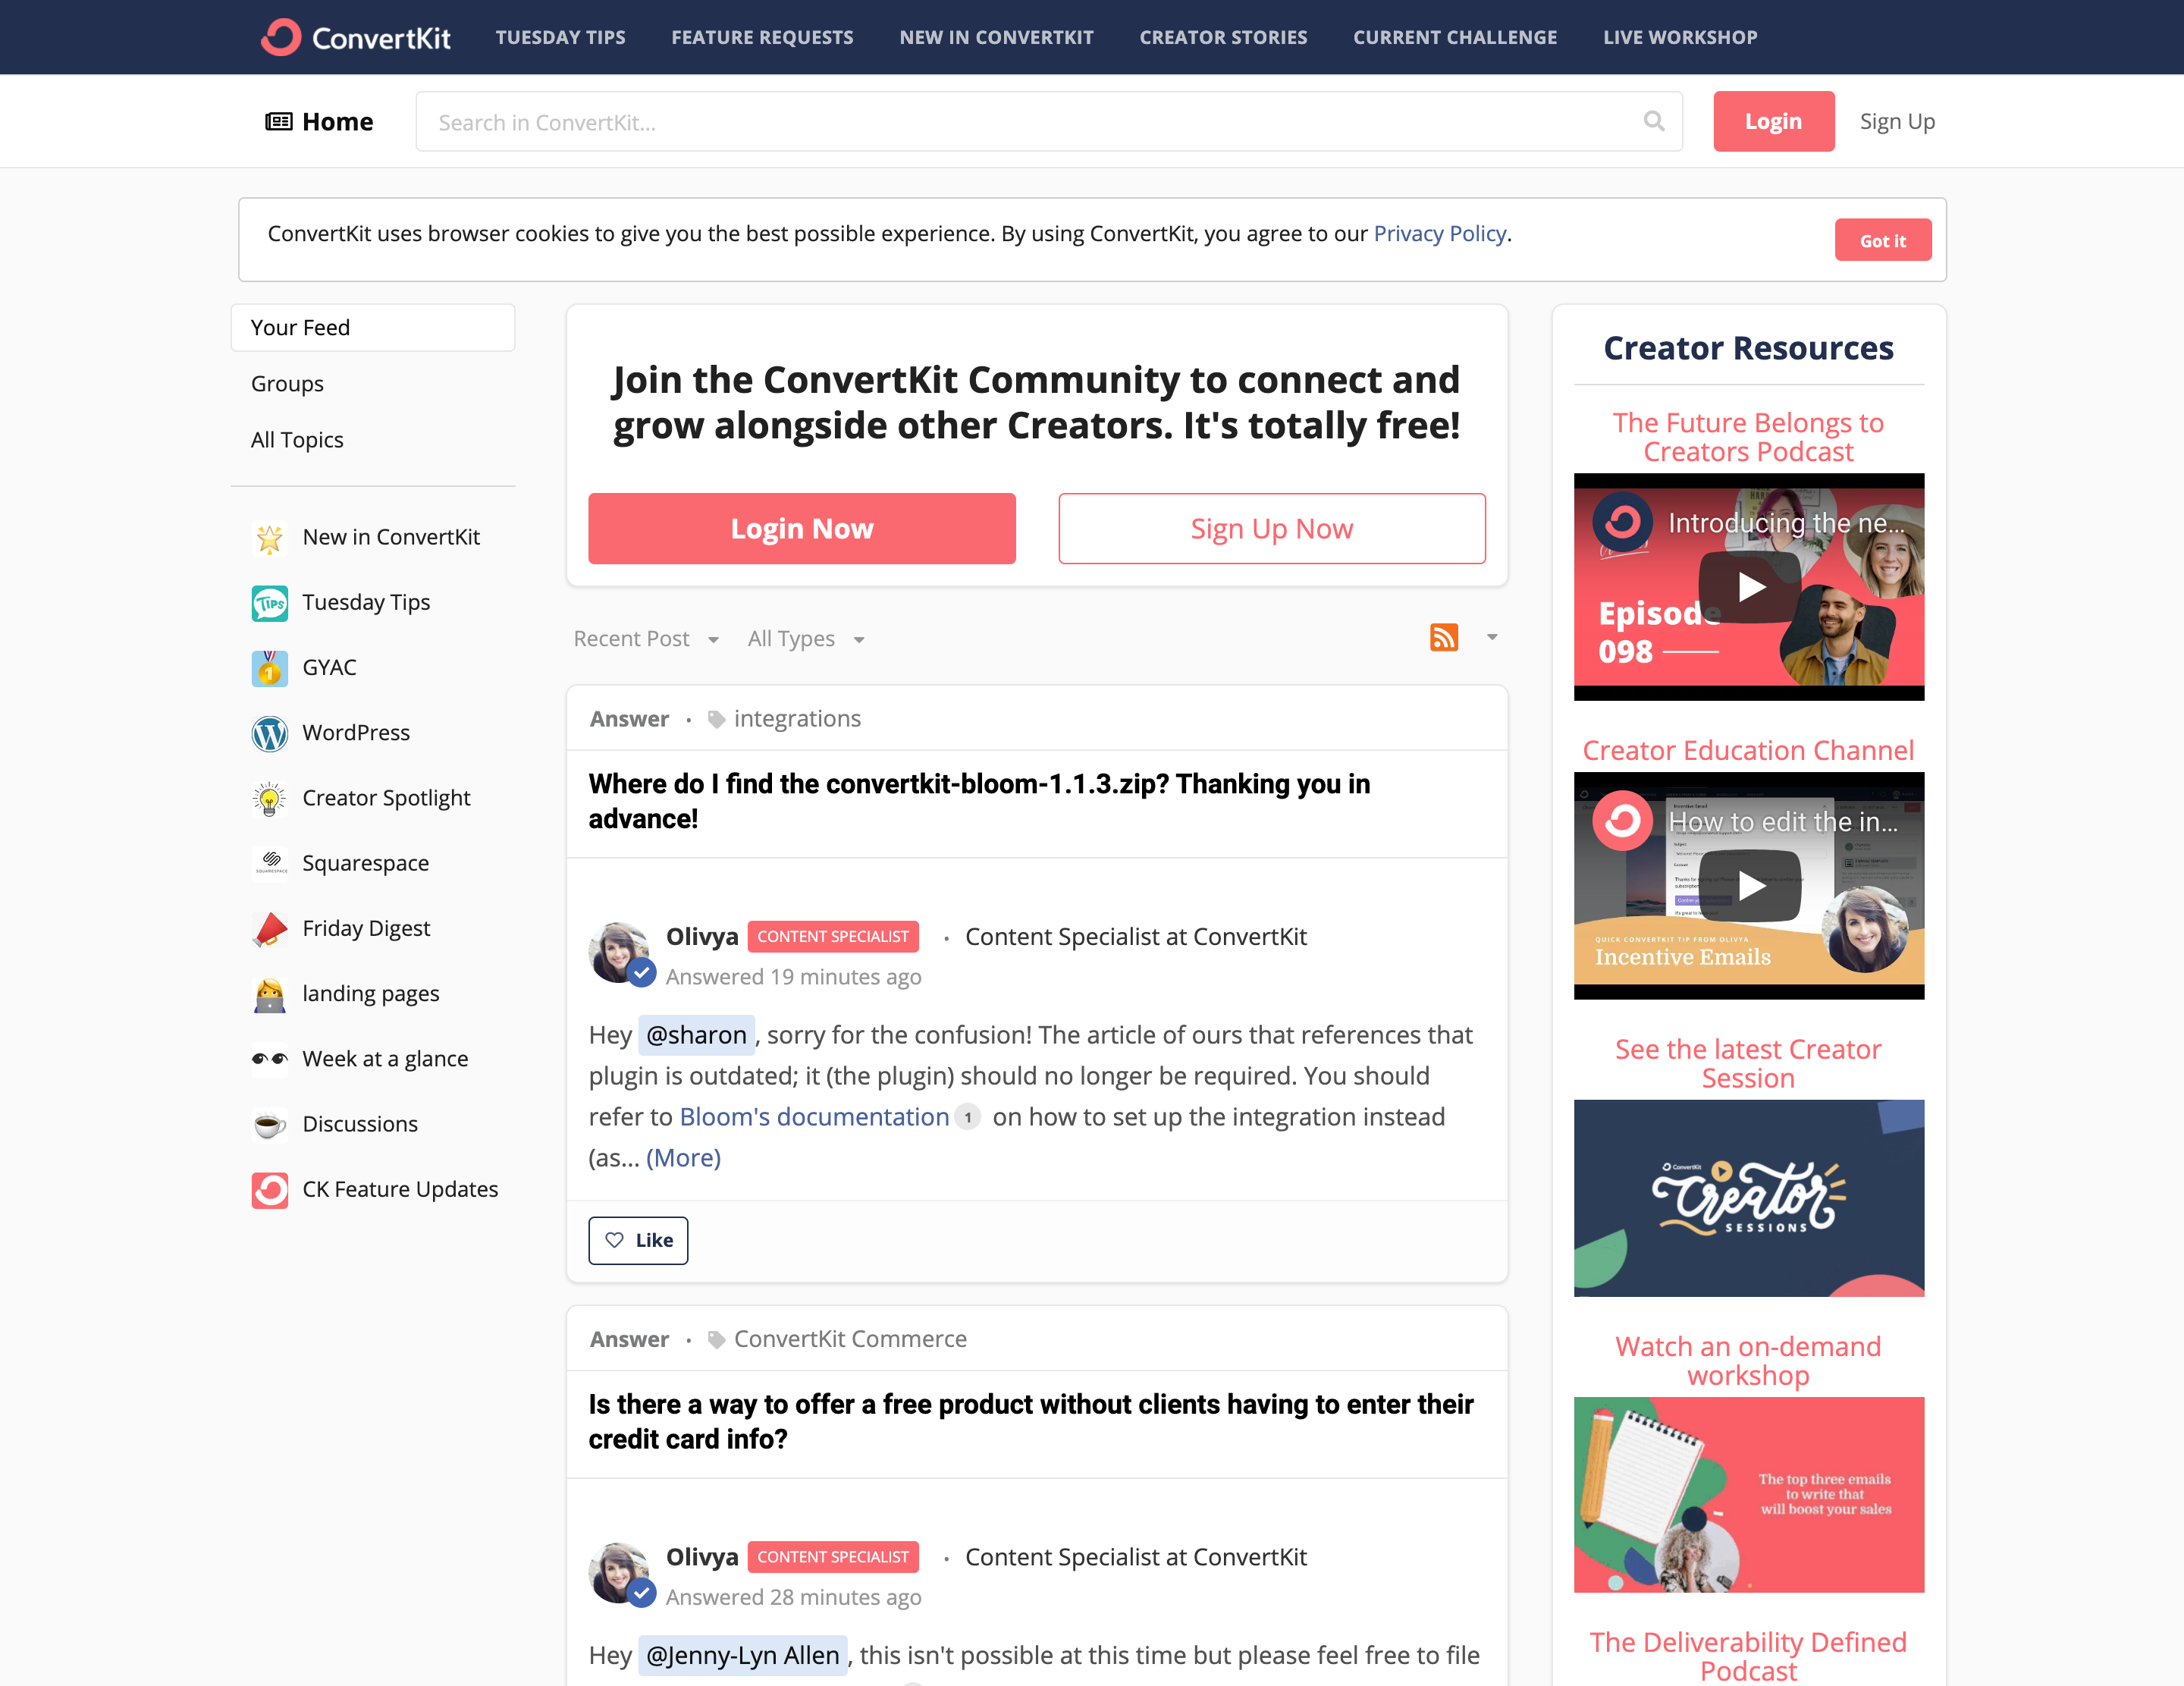 Tribe screenshot: ConvertKit's customer community enables members to post content, access key resources, learn from peers, request answers, comment, upvote, and build networks.